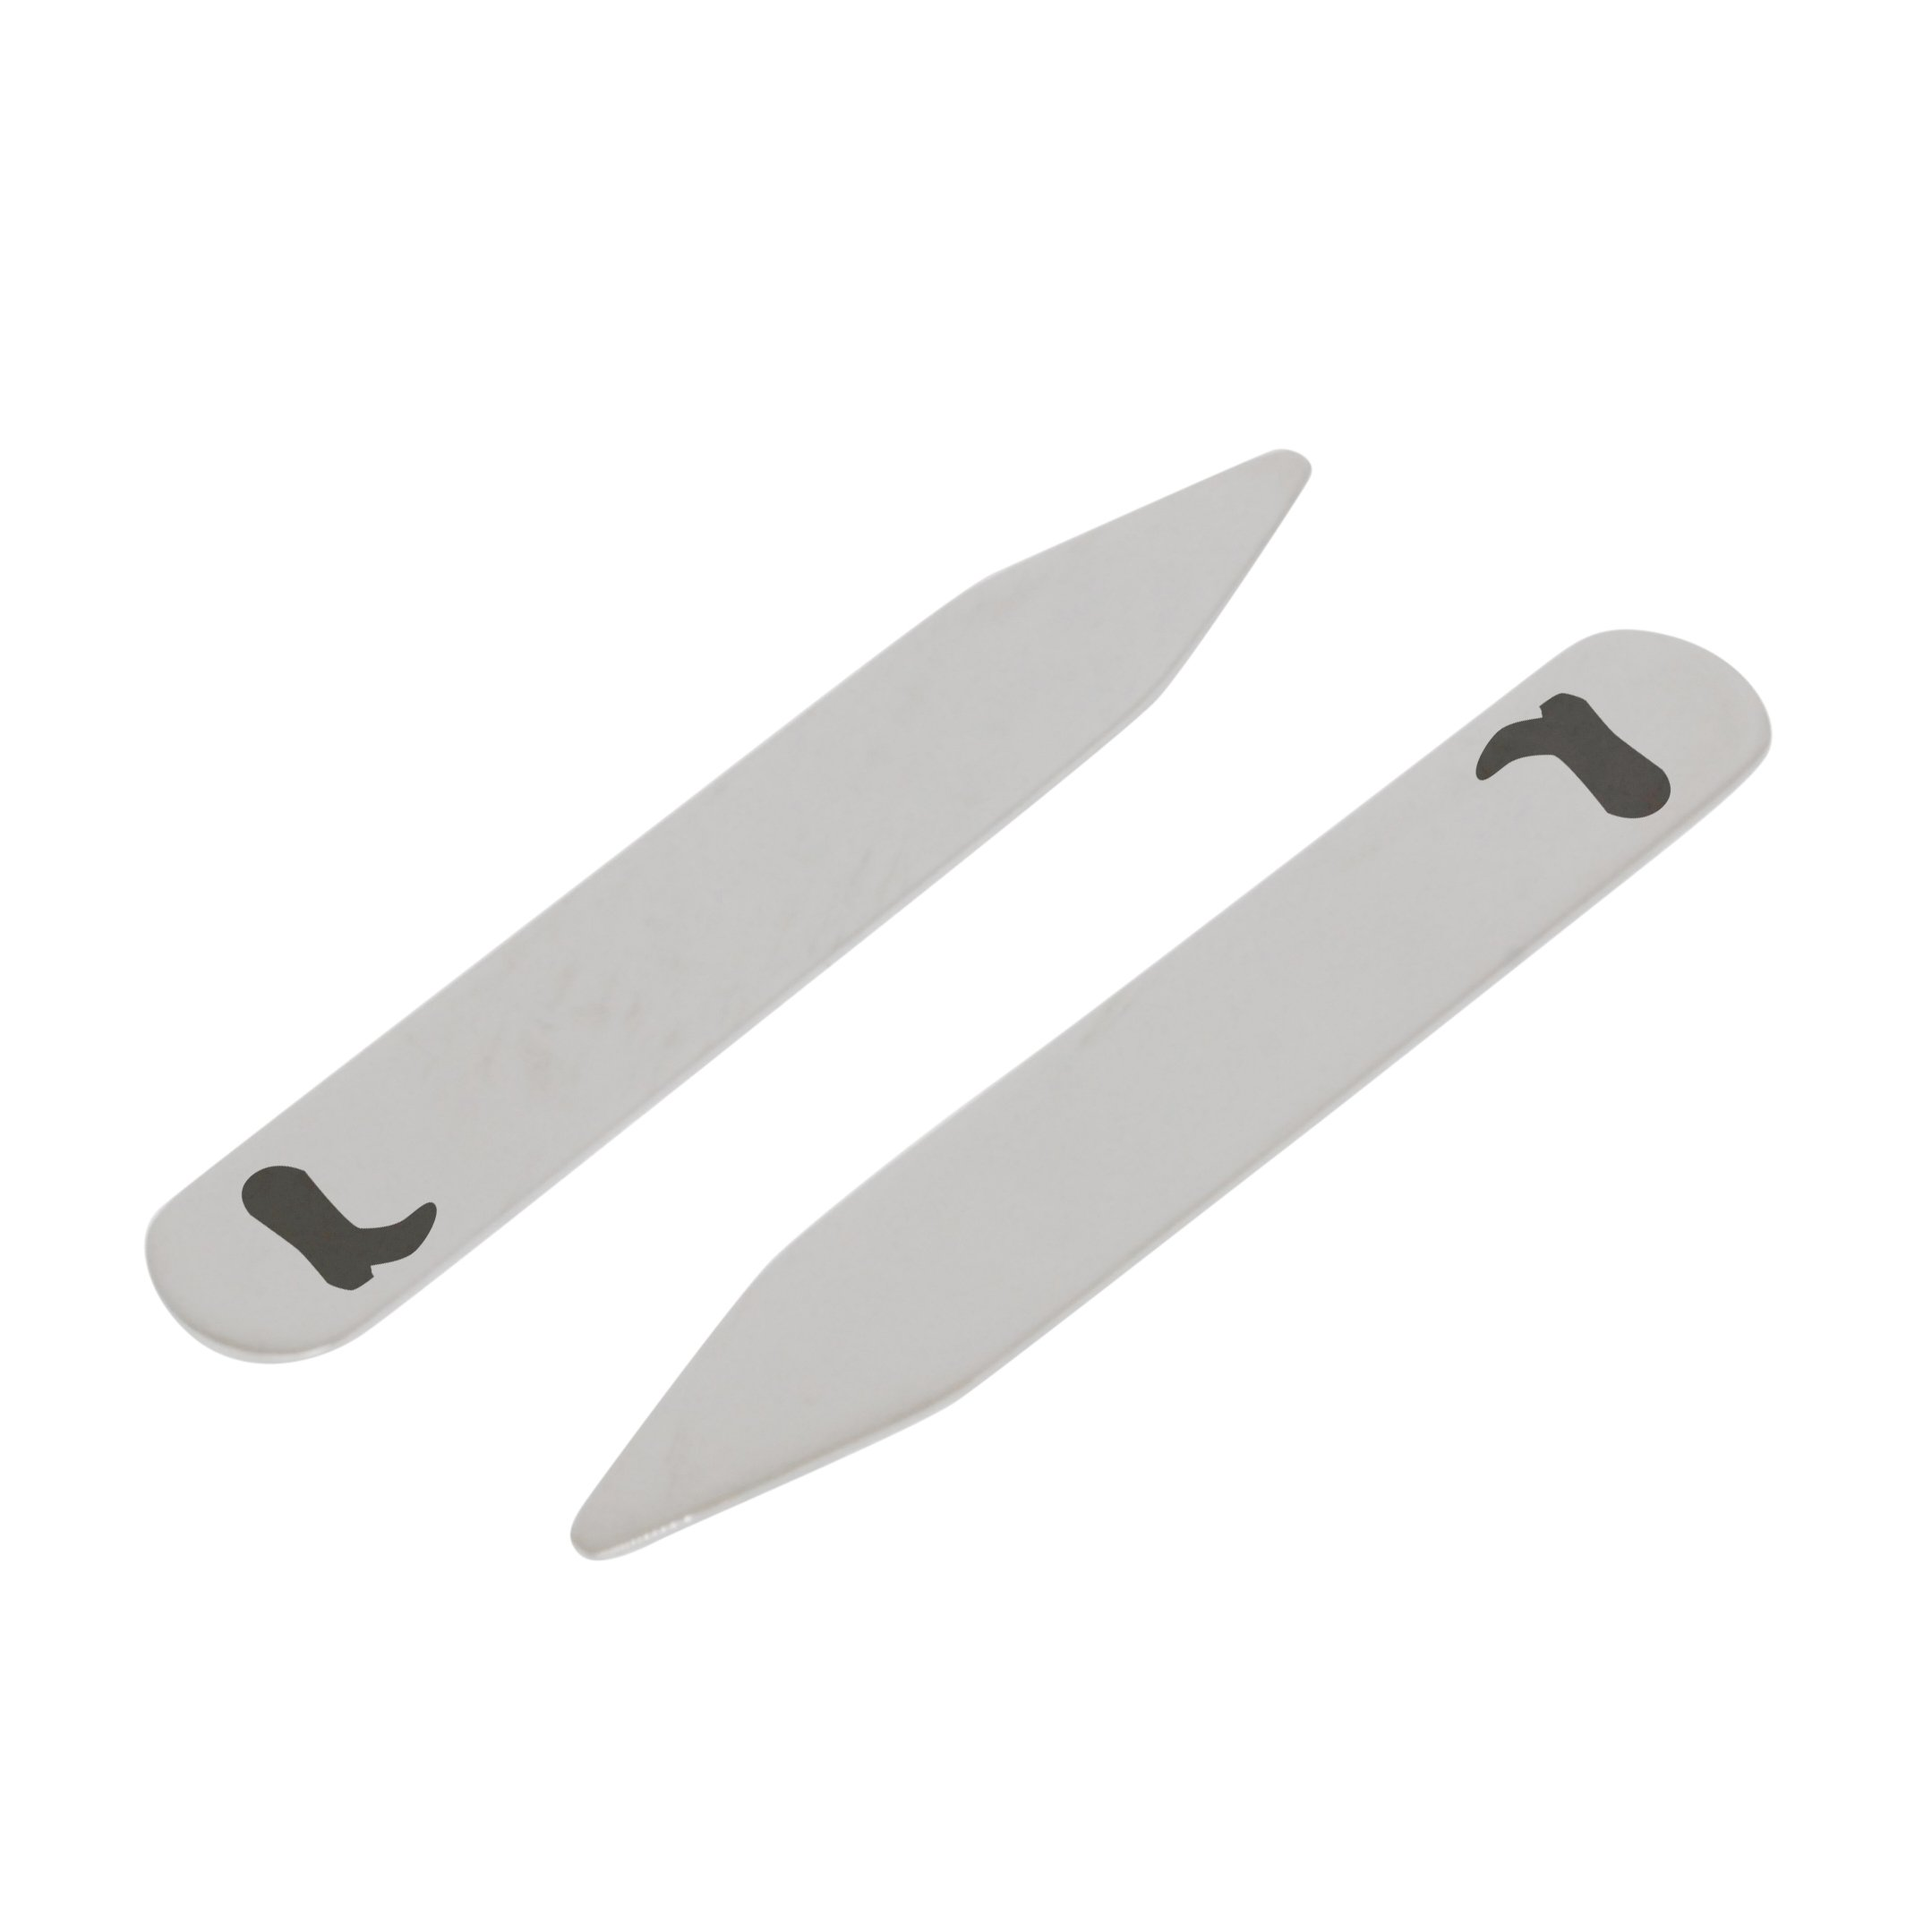 MODERN GOODS SHOP Stainless Steel Collar Stays With Laser Engraved Cowgirl Boot Design - 2.5 Inch Metal Collar Stiffeners - Made In USA